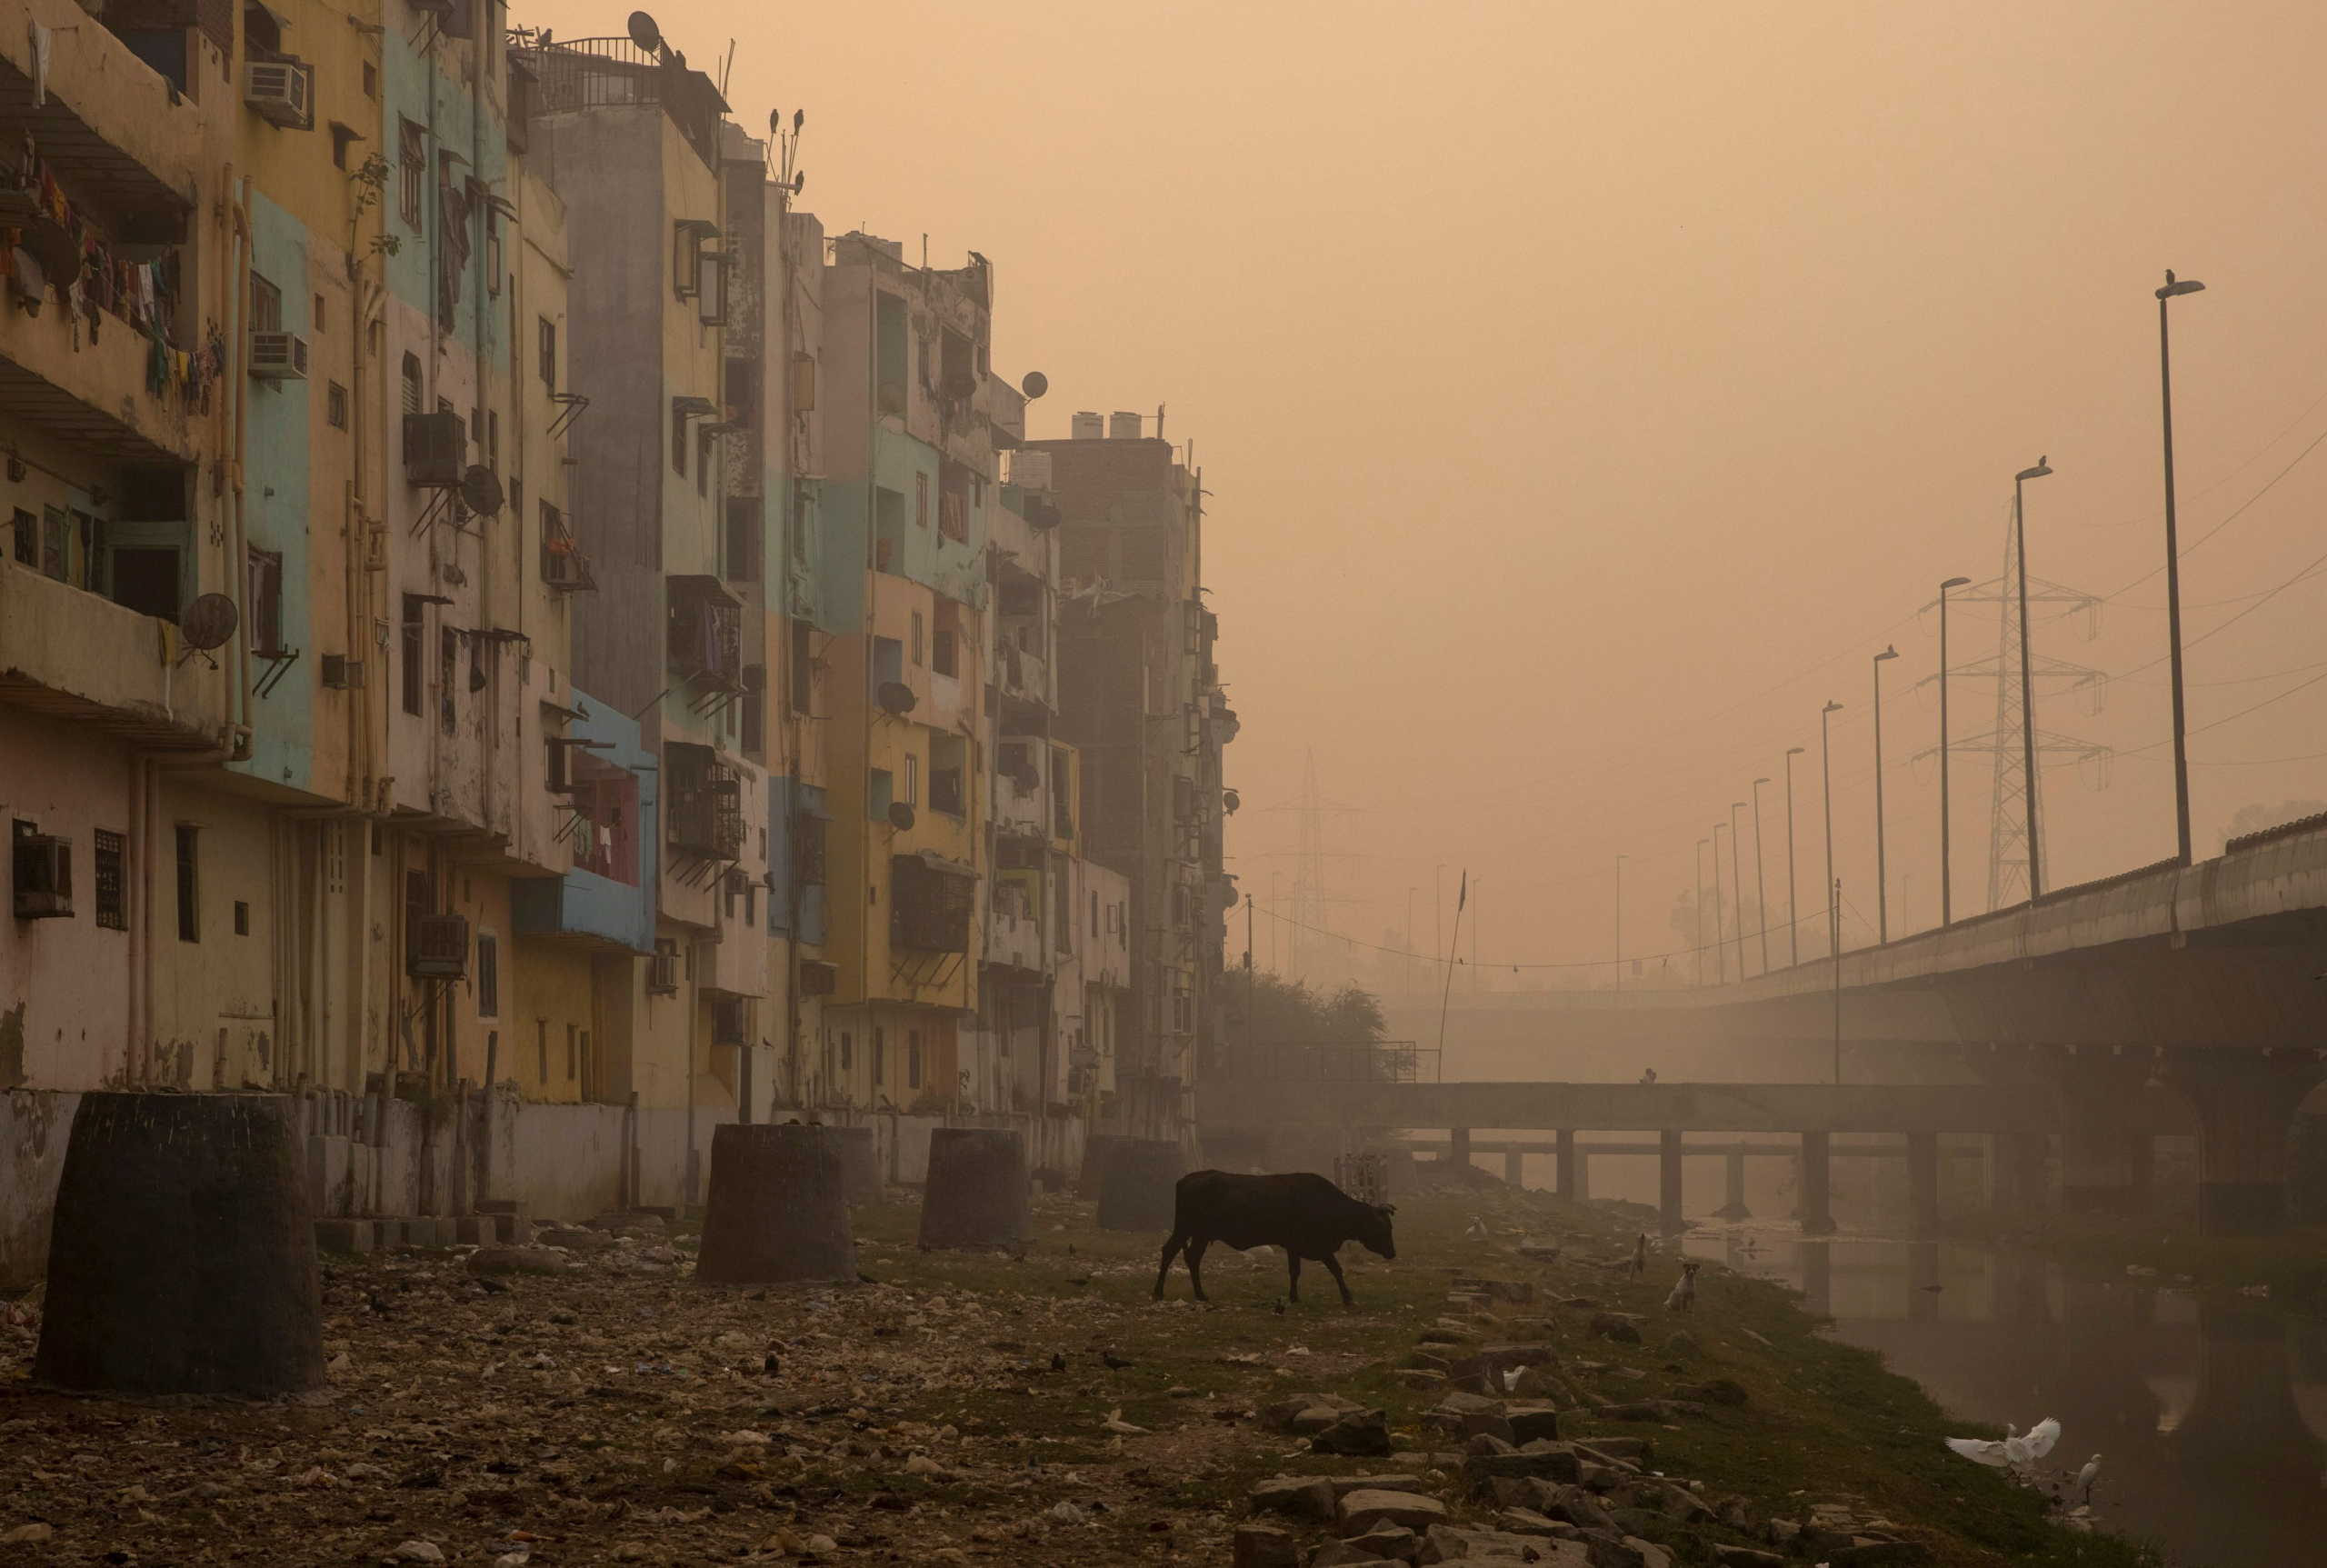 A residential area is seen shrouded in smog in New Delhi, India, November 9, 2020. REUTERS/Danish Siddiqui     TPX IMAGES OF THE DAY